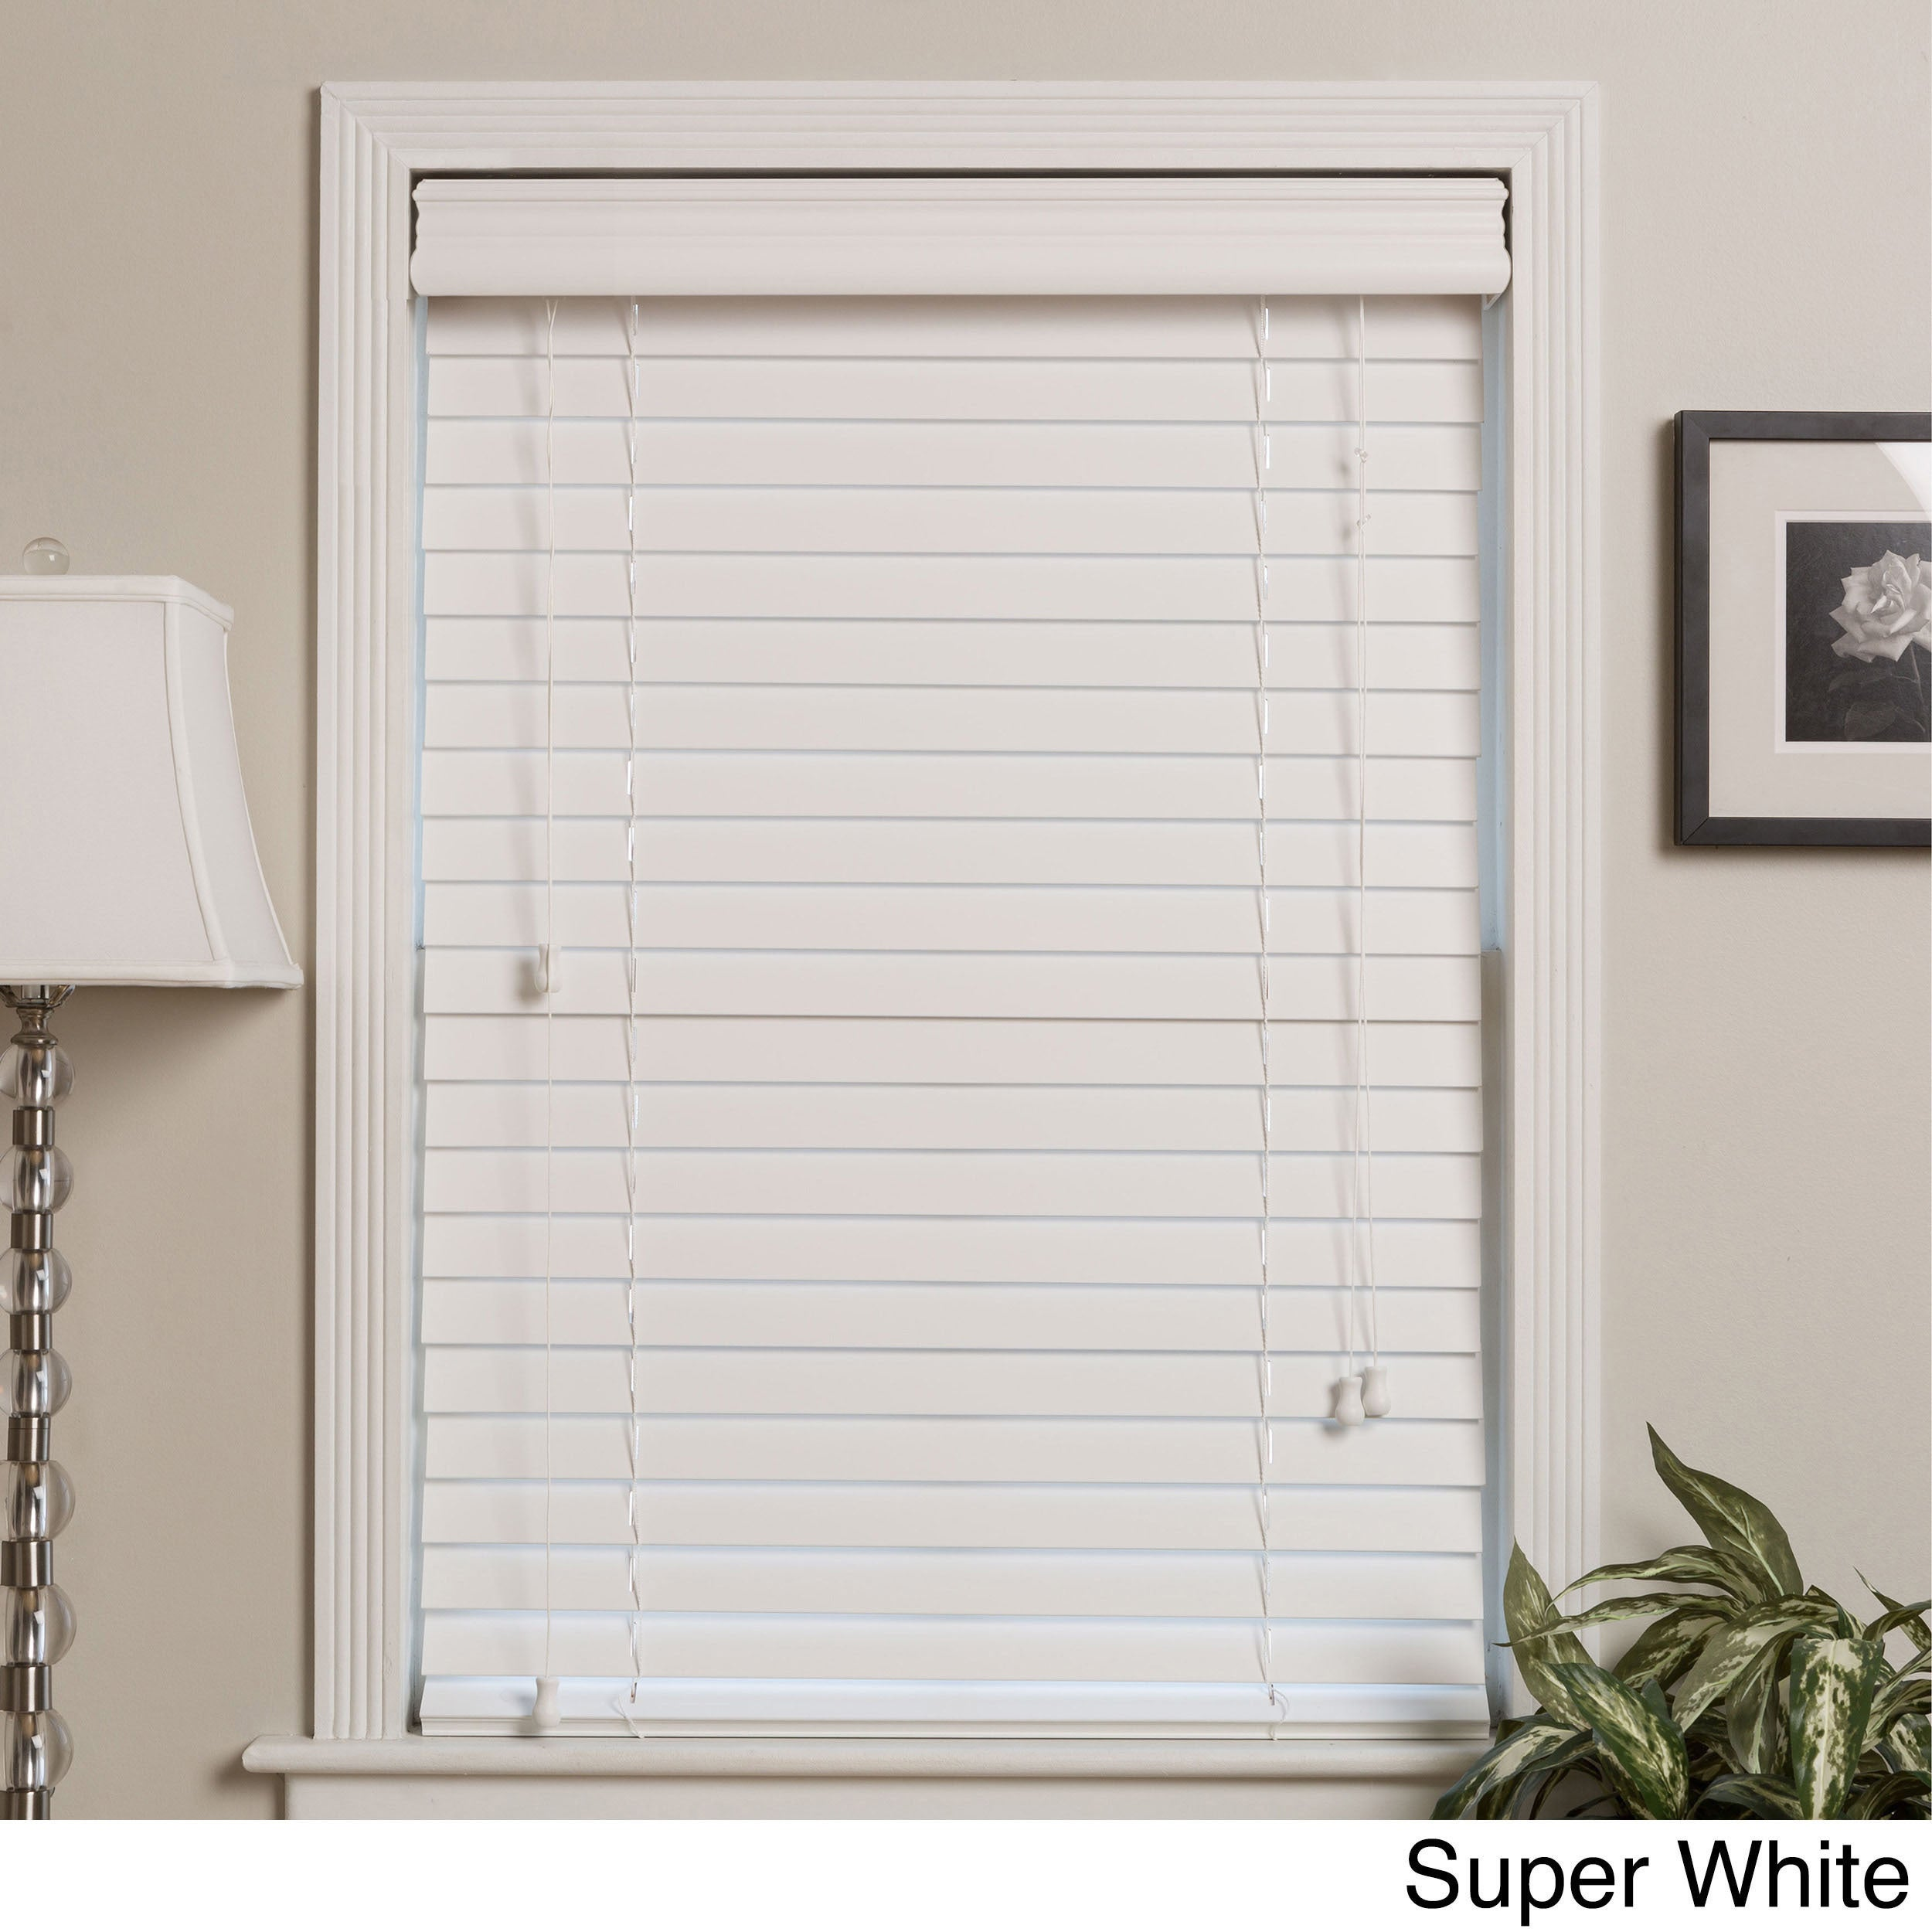 oc window roller picture product blinds img shades blackout